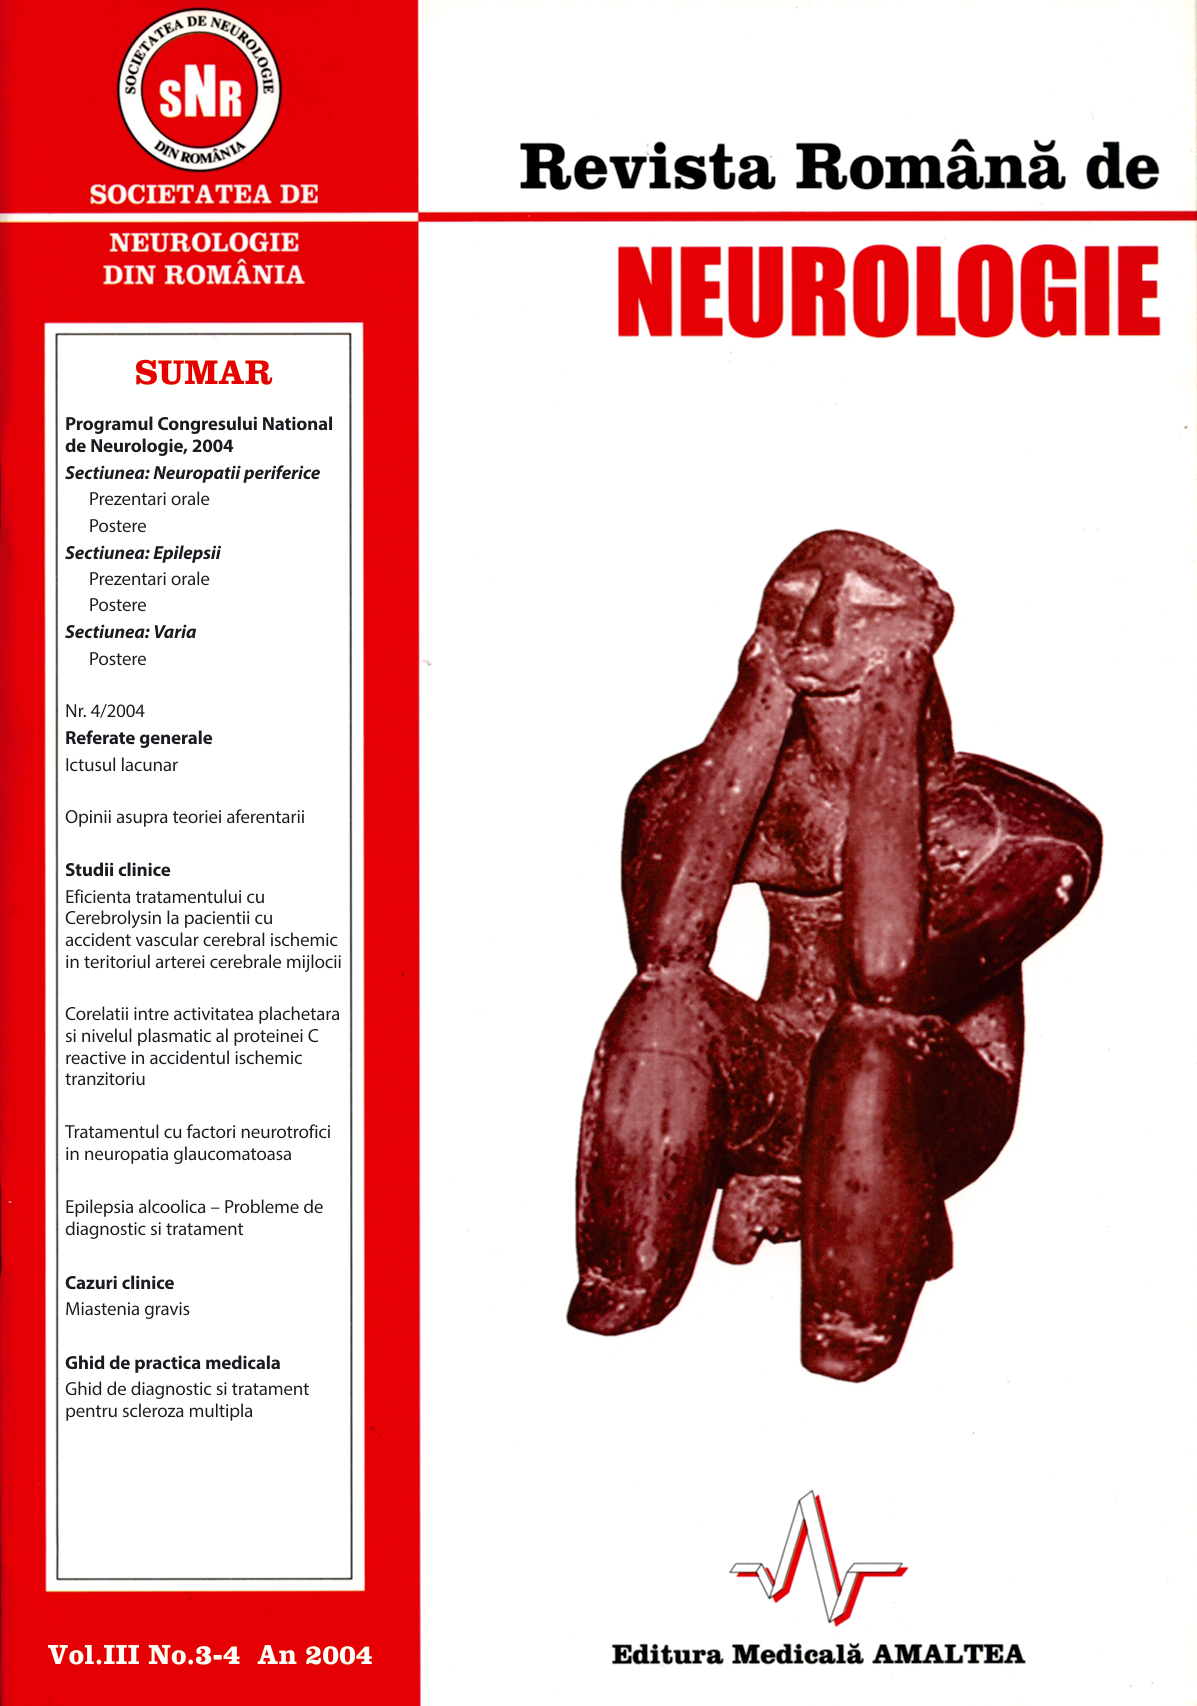 Romanian Journal of Neurology, Volume III, No. 3-4, 2004